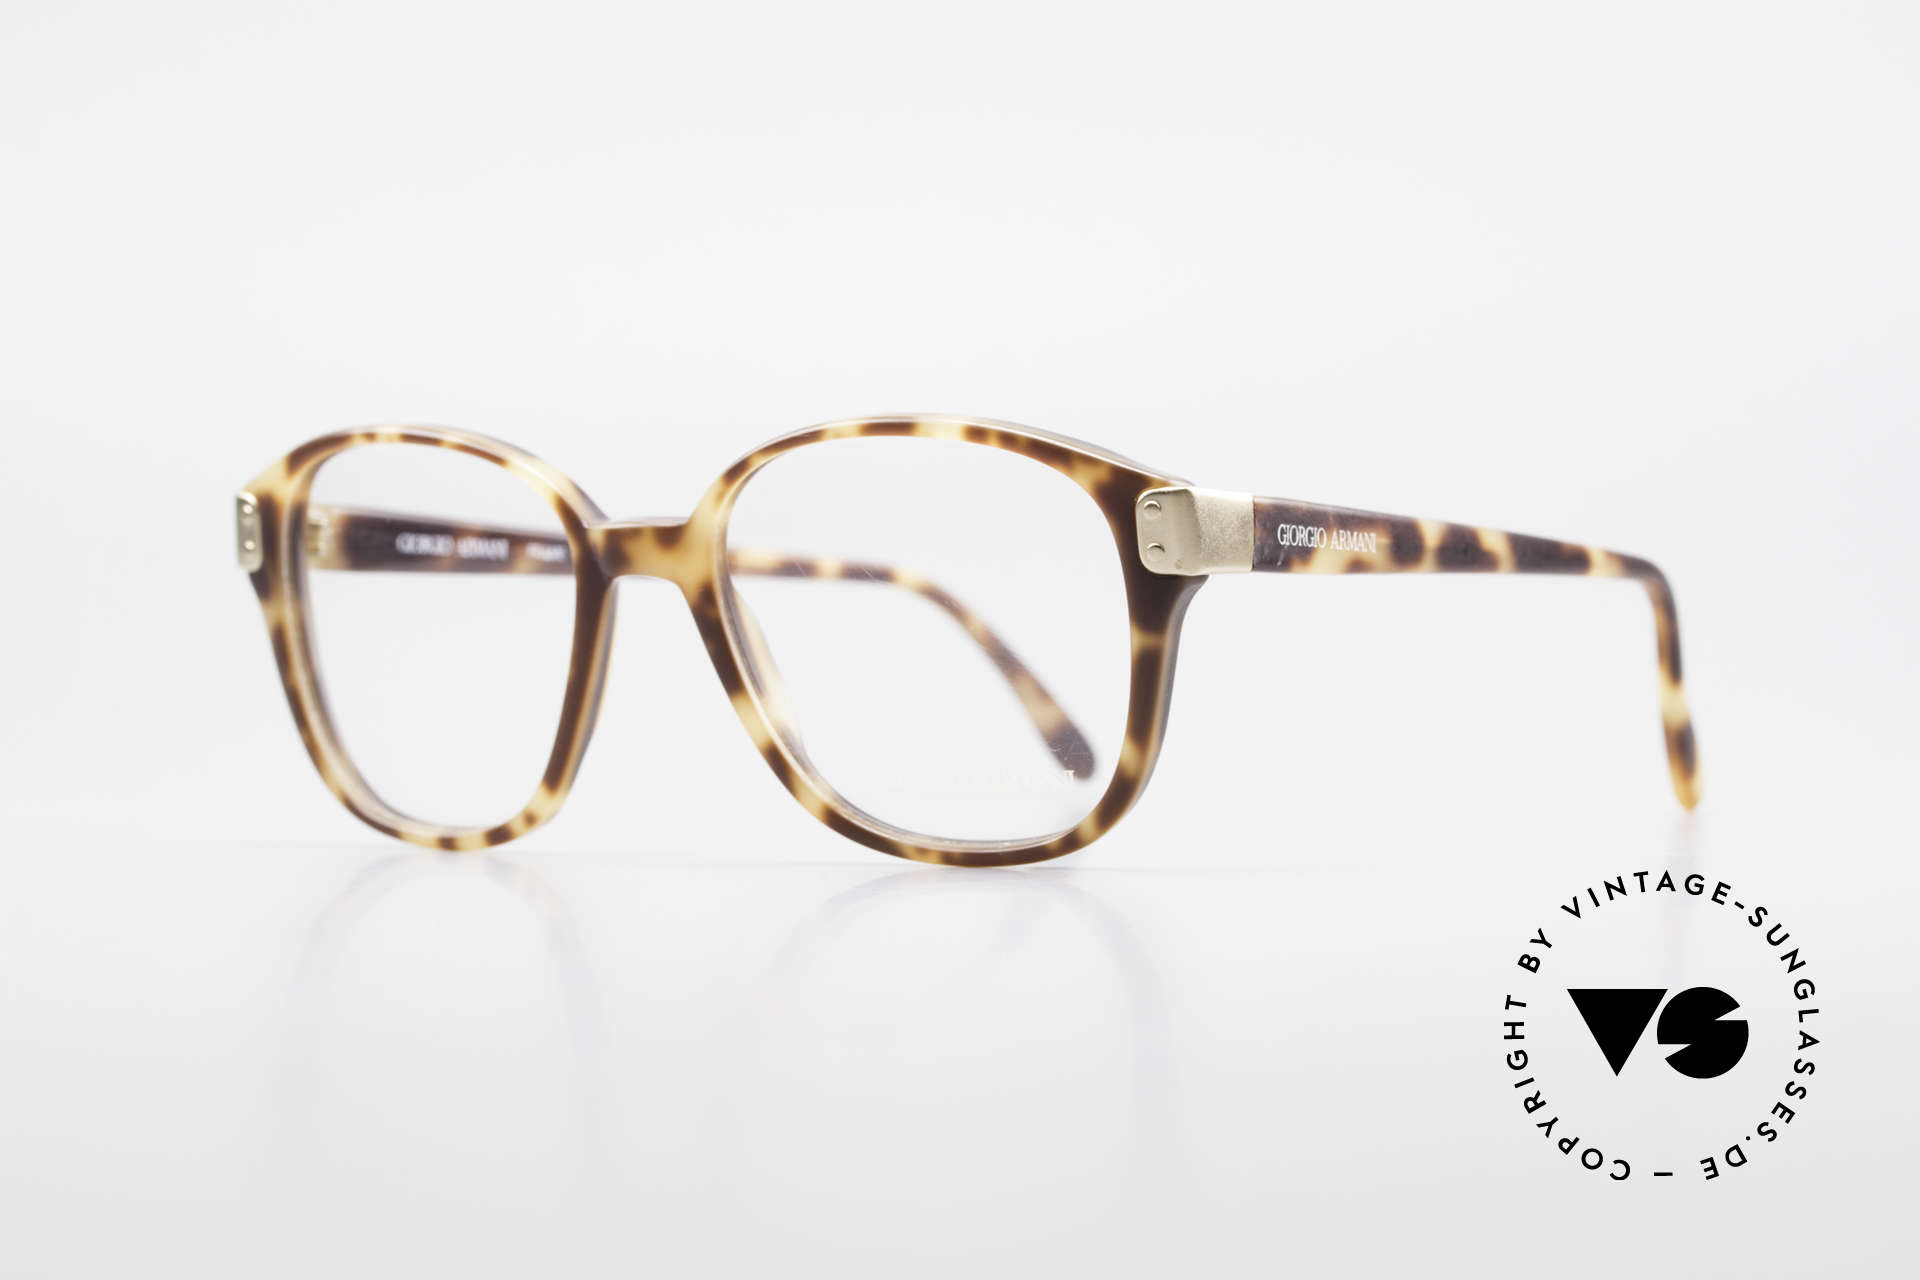 Giorgio Armani 307 Classic 80's Vintage Glasses, high-end quality and very interesting frame pattern, Made for Men and Women